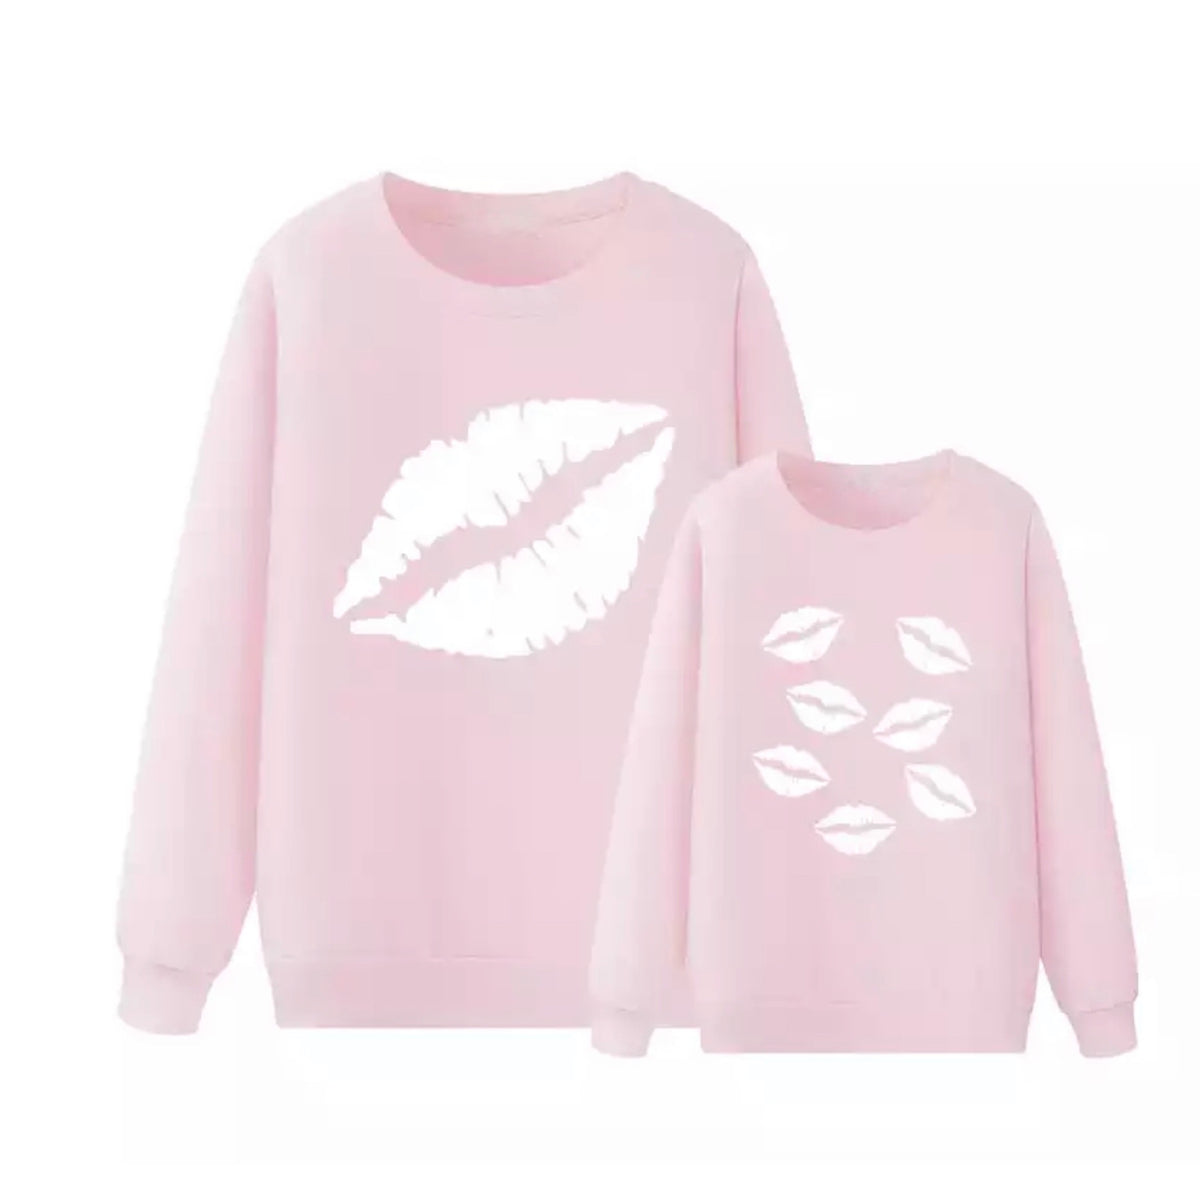 Lips Sweatshirt Mother Daughter Matching Child Size